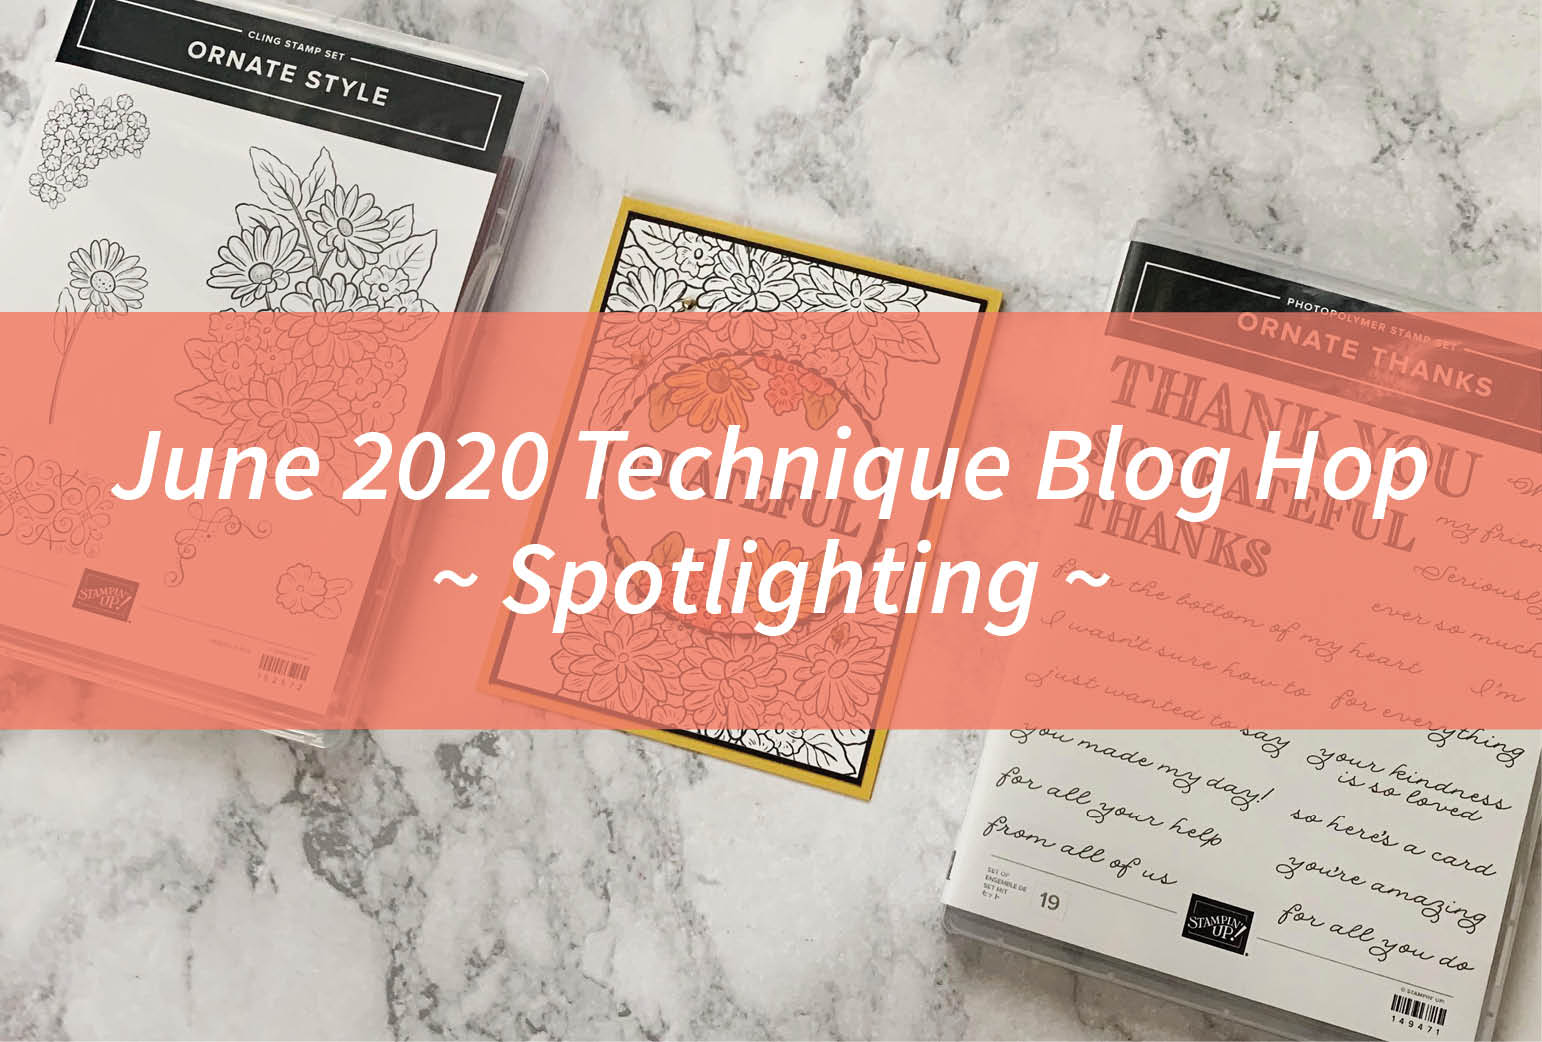 June 2020 Technique Blog Hop – Spotlighting